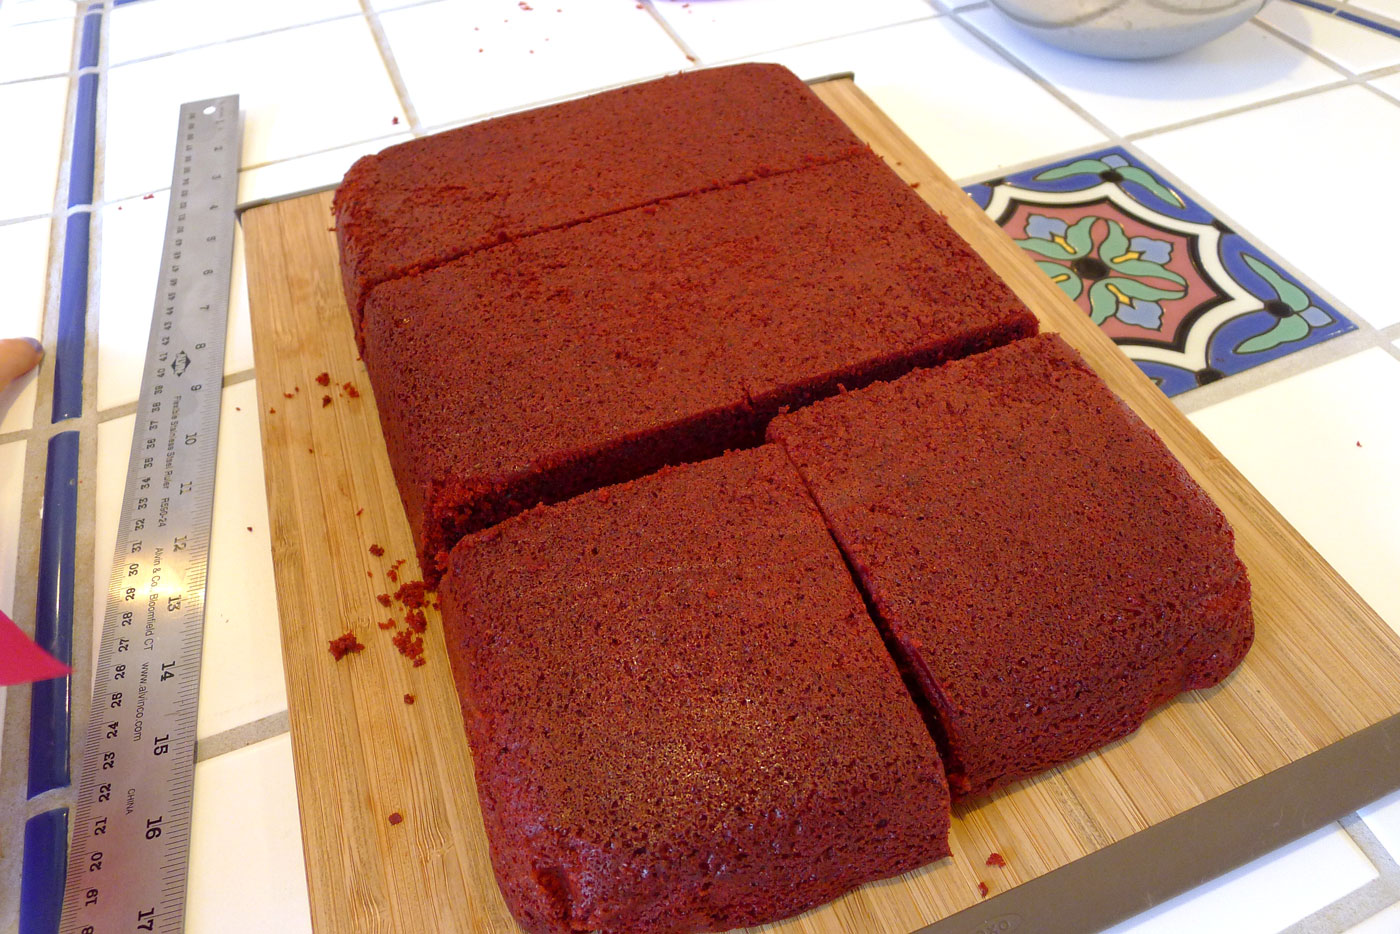 the cake (completely cooled) is cut into bricks